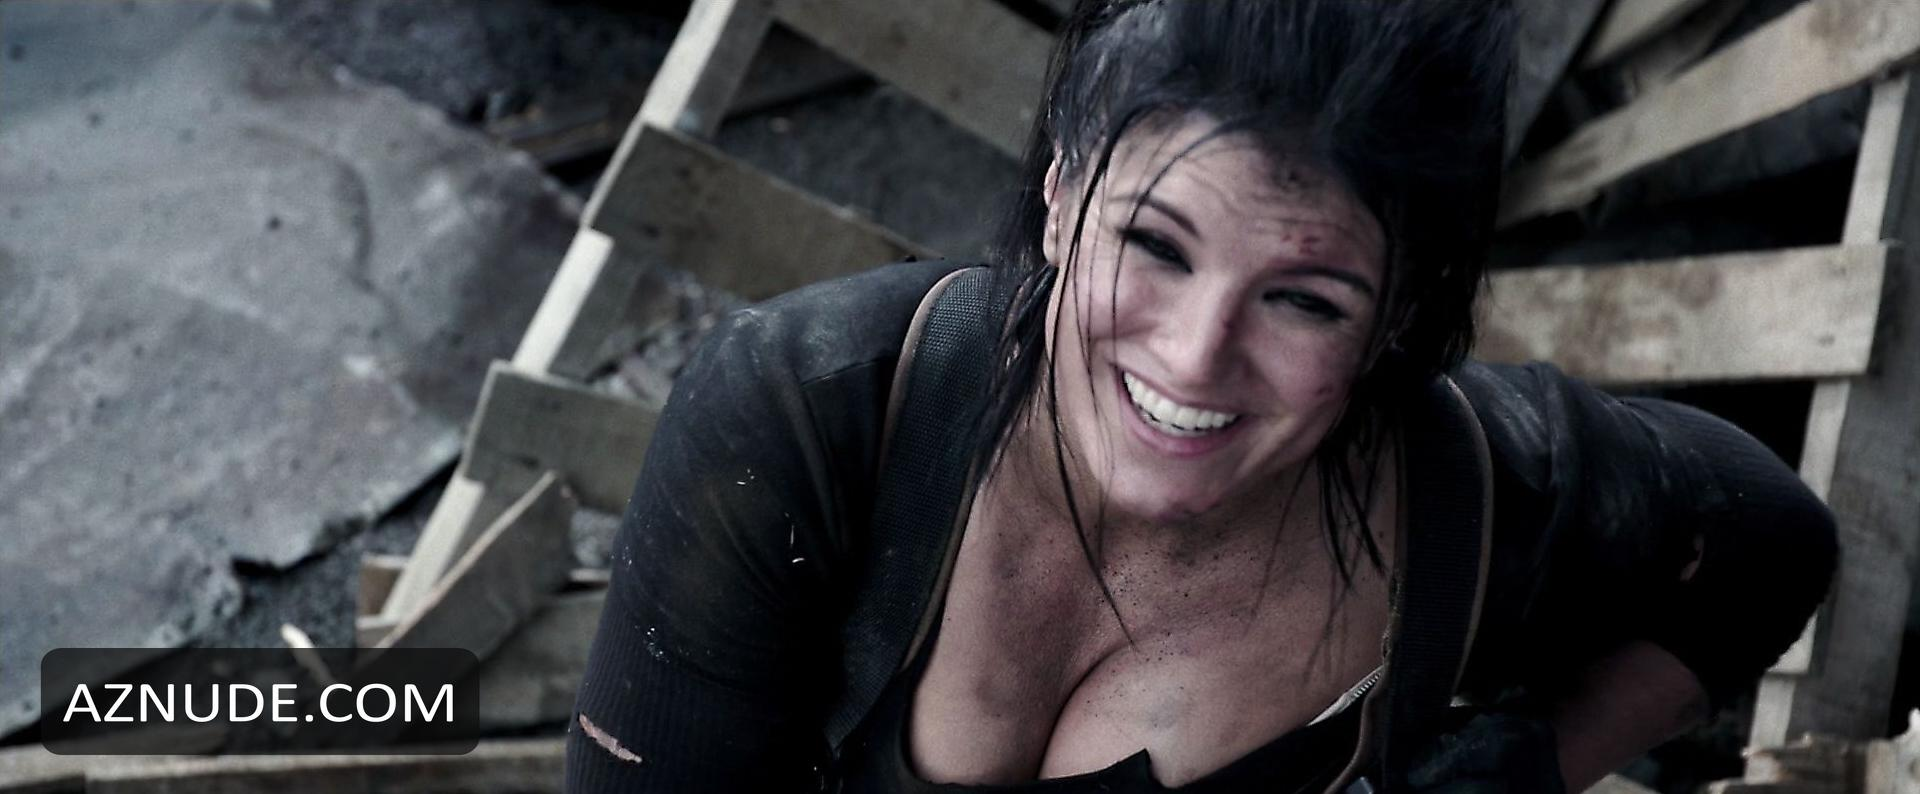 Gina carano hot naked